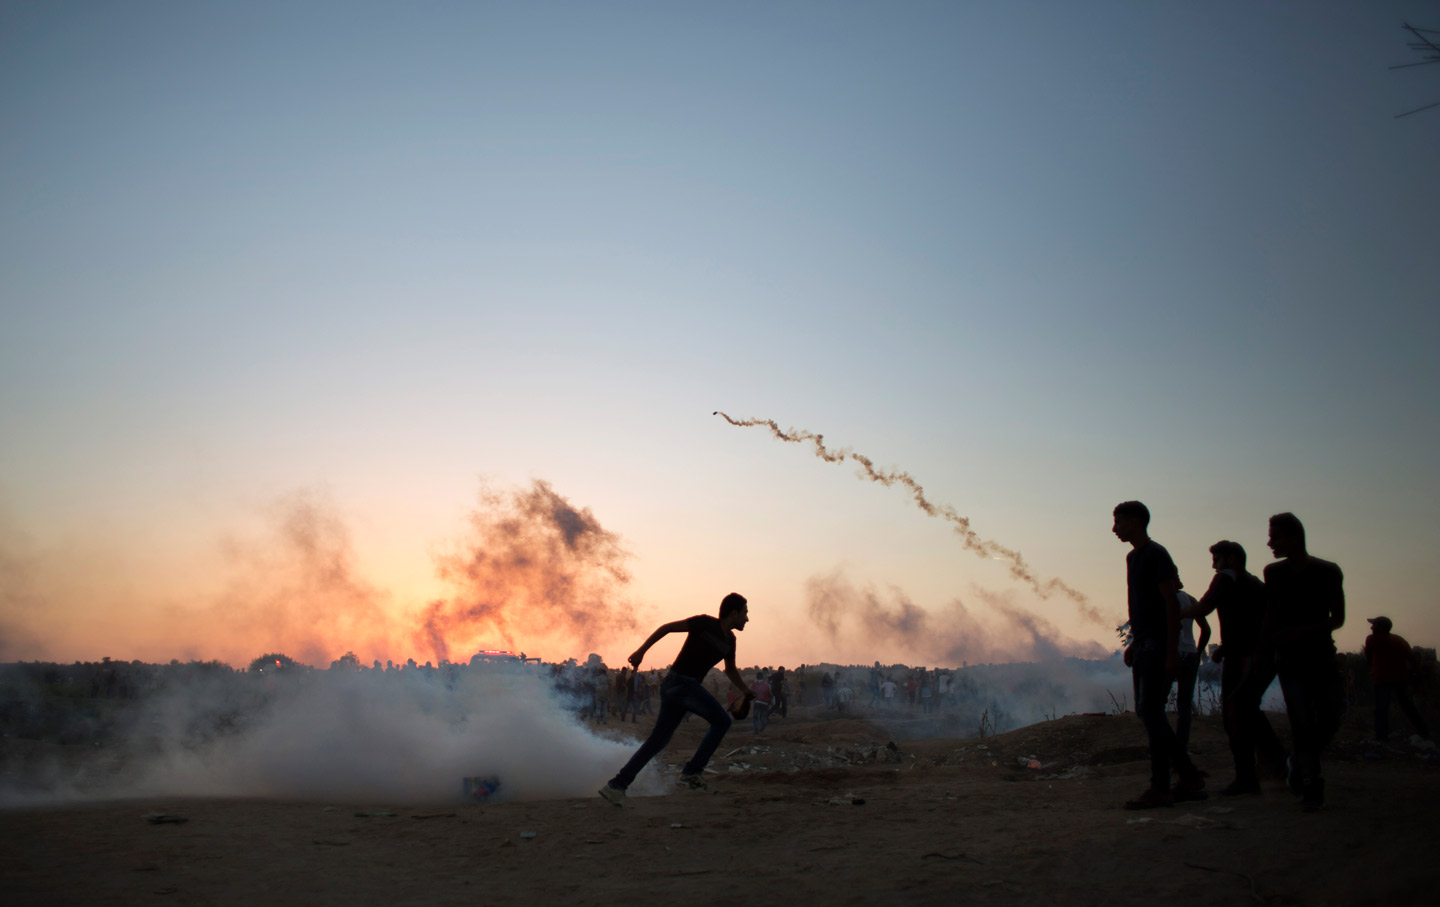 Palestine_Demonstration_Tear_Gas_October_2015_ap_img